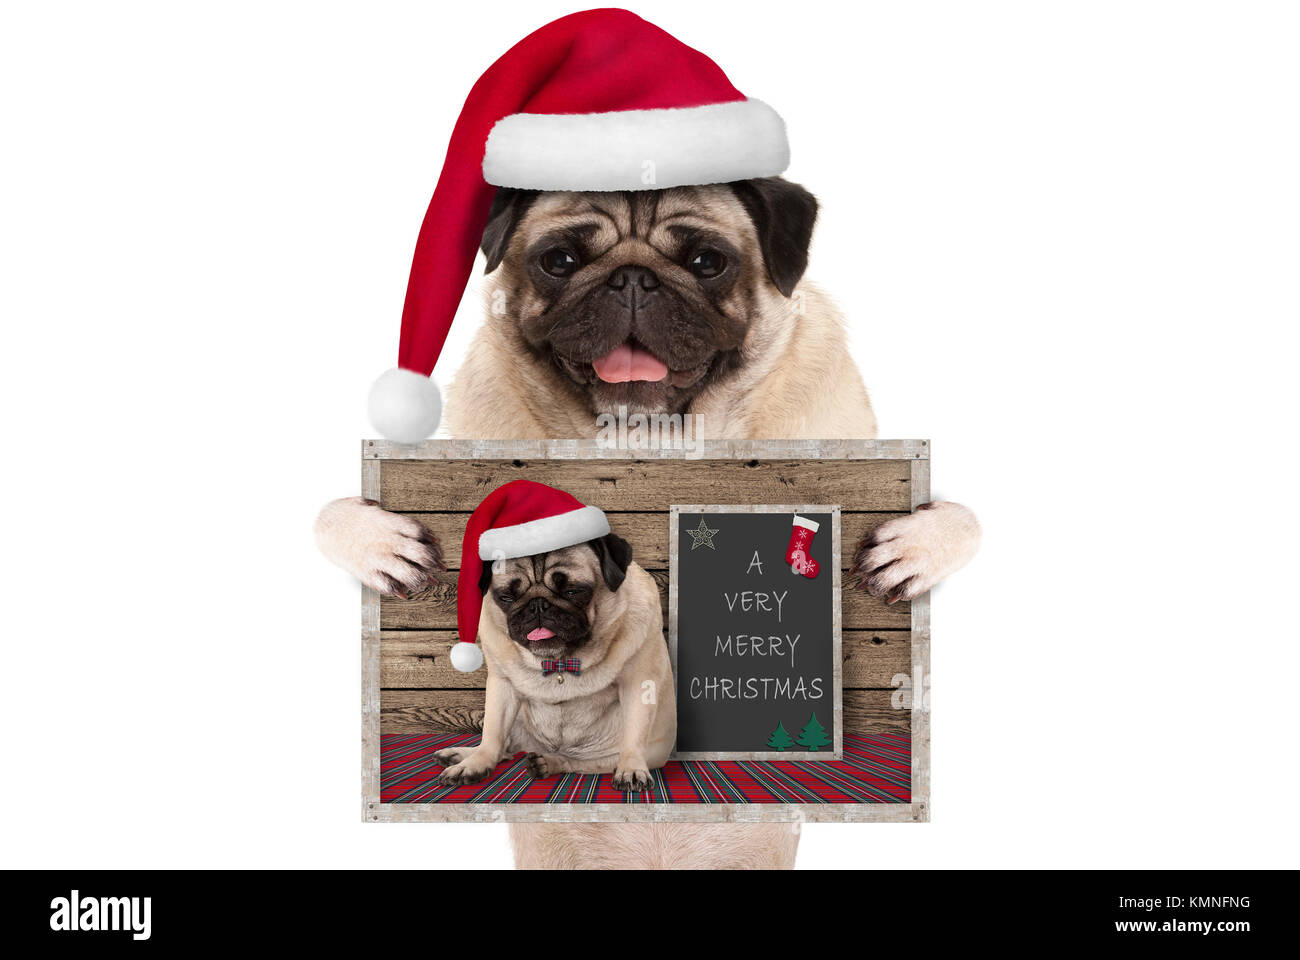 Cute Smiling Christmas Pug Dog With Santa Hat Holding Up Greeting